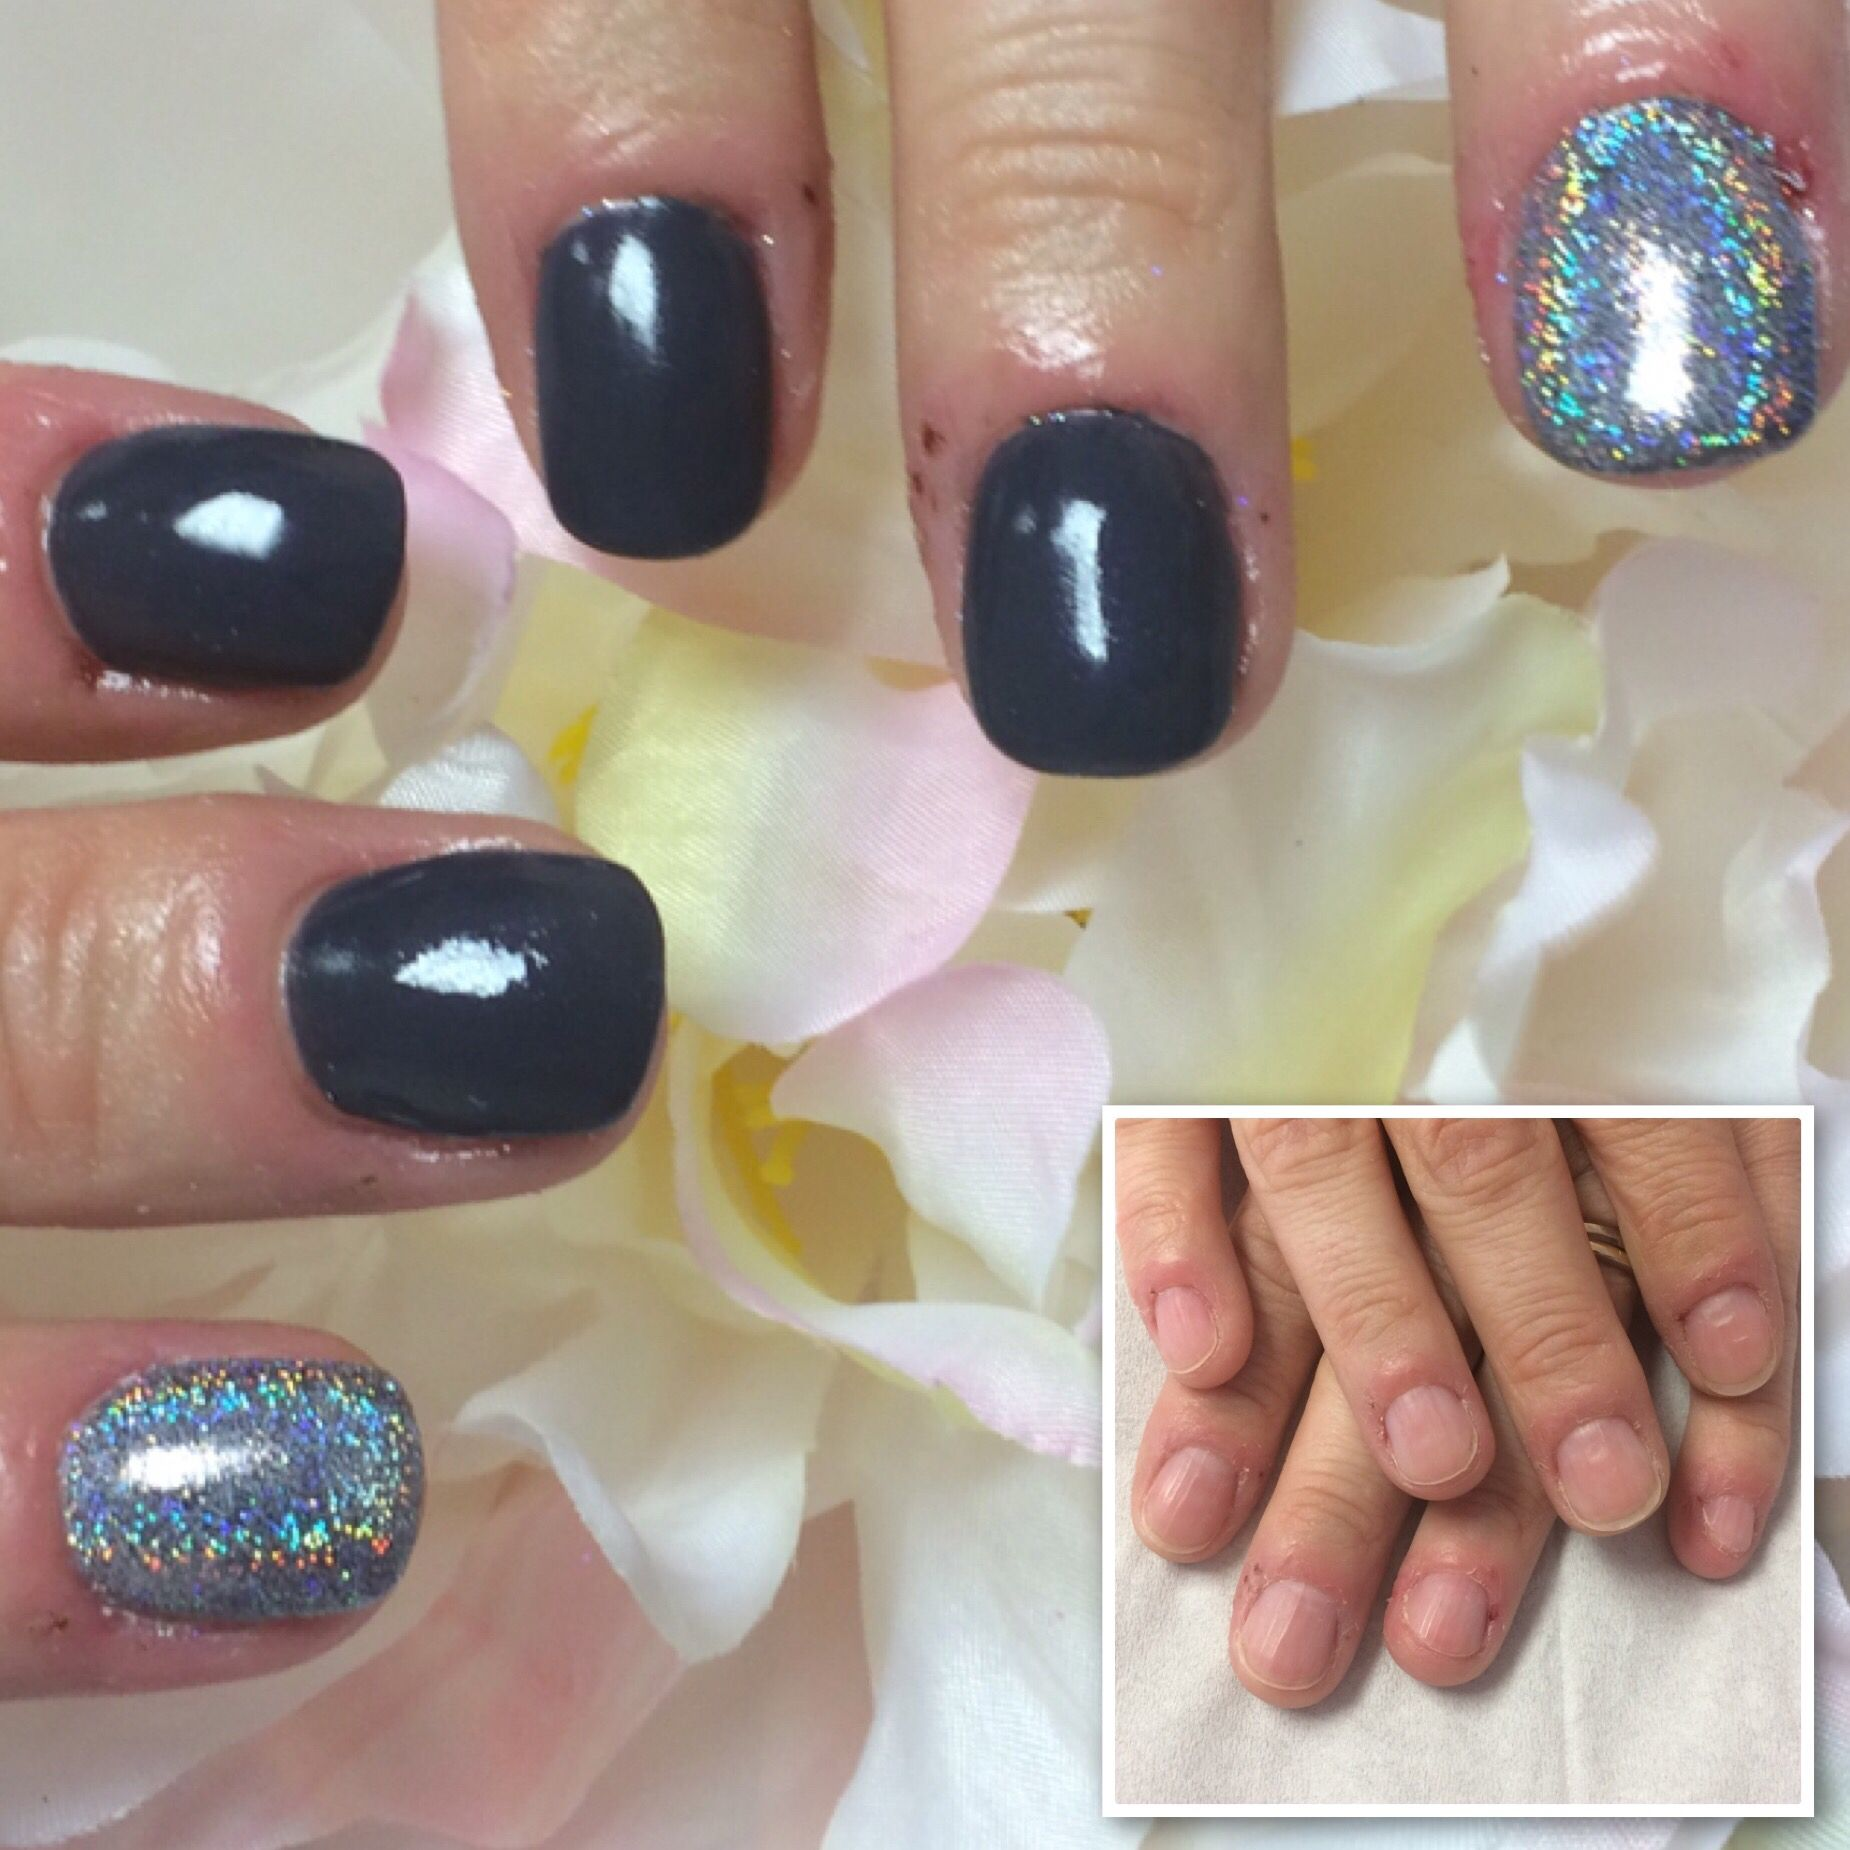 Short Sculptedextensions Using Hand Nail Harmony Polygel From Nailharmonyuk Gelish With Jetset And Aurigaglitter From Th With Images Polygel Nails Nails Nail Harmony